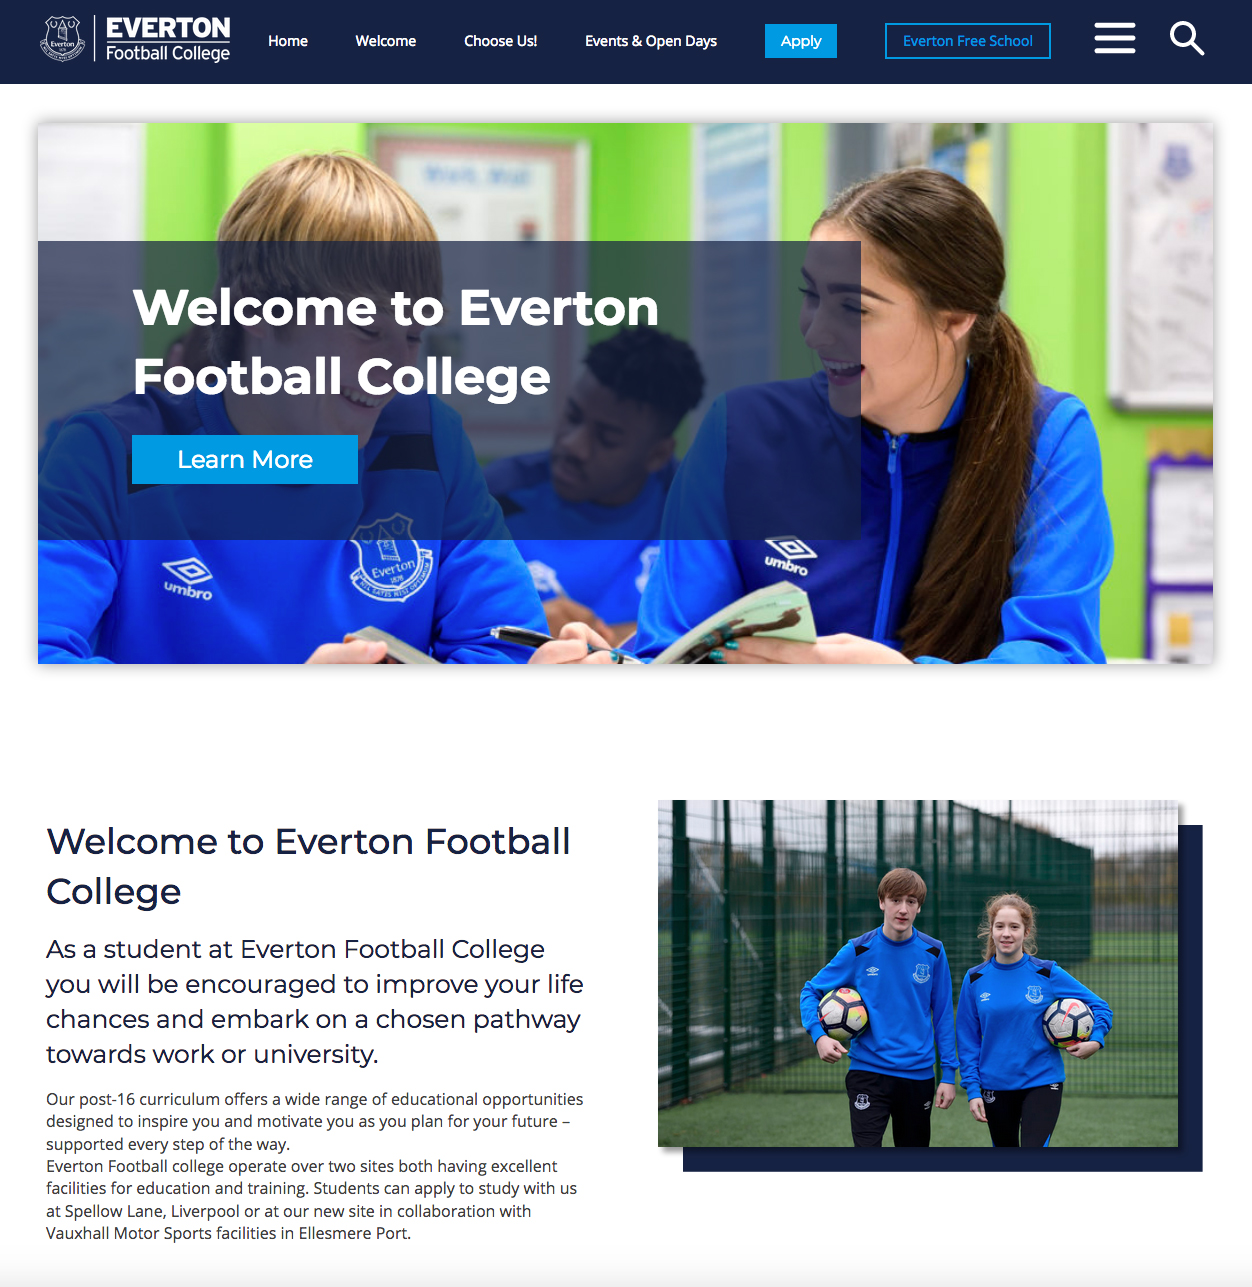 everton-football-college